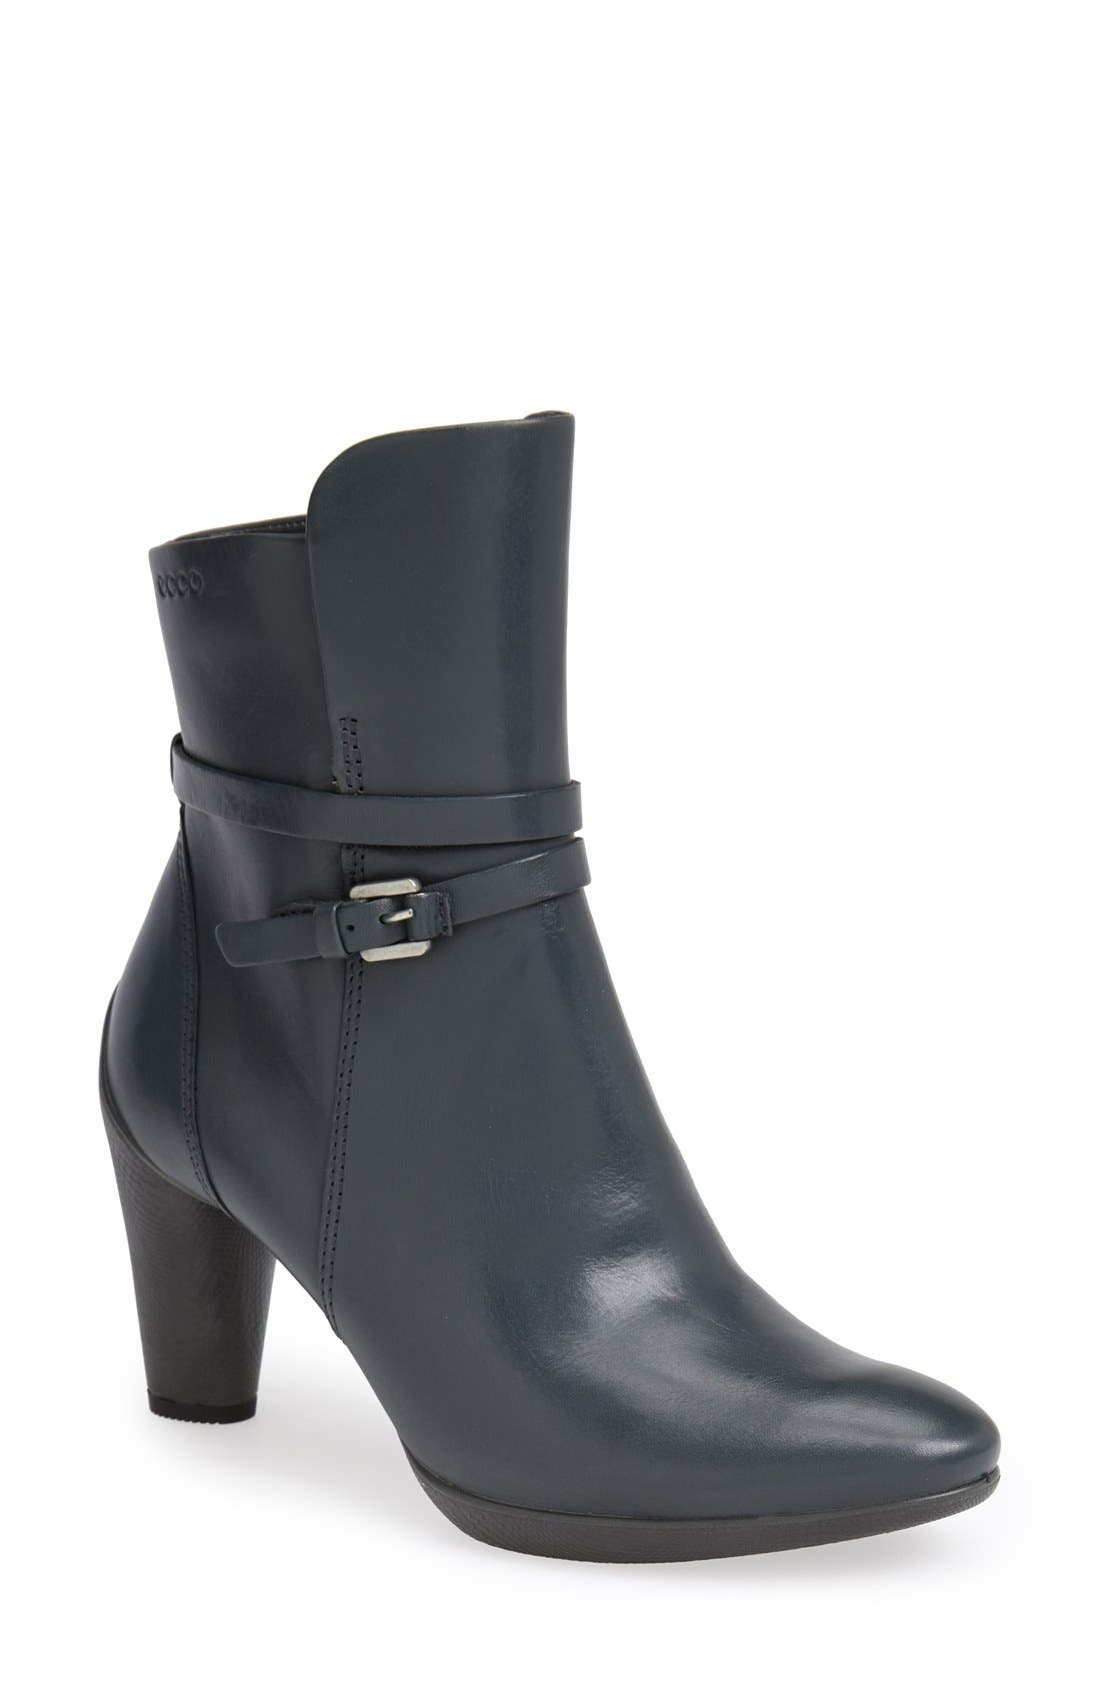 Alternate Image 1 Selected - ECCO 'Sculptured' Ankle Boot